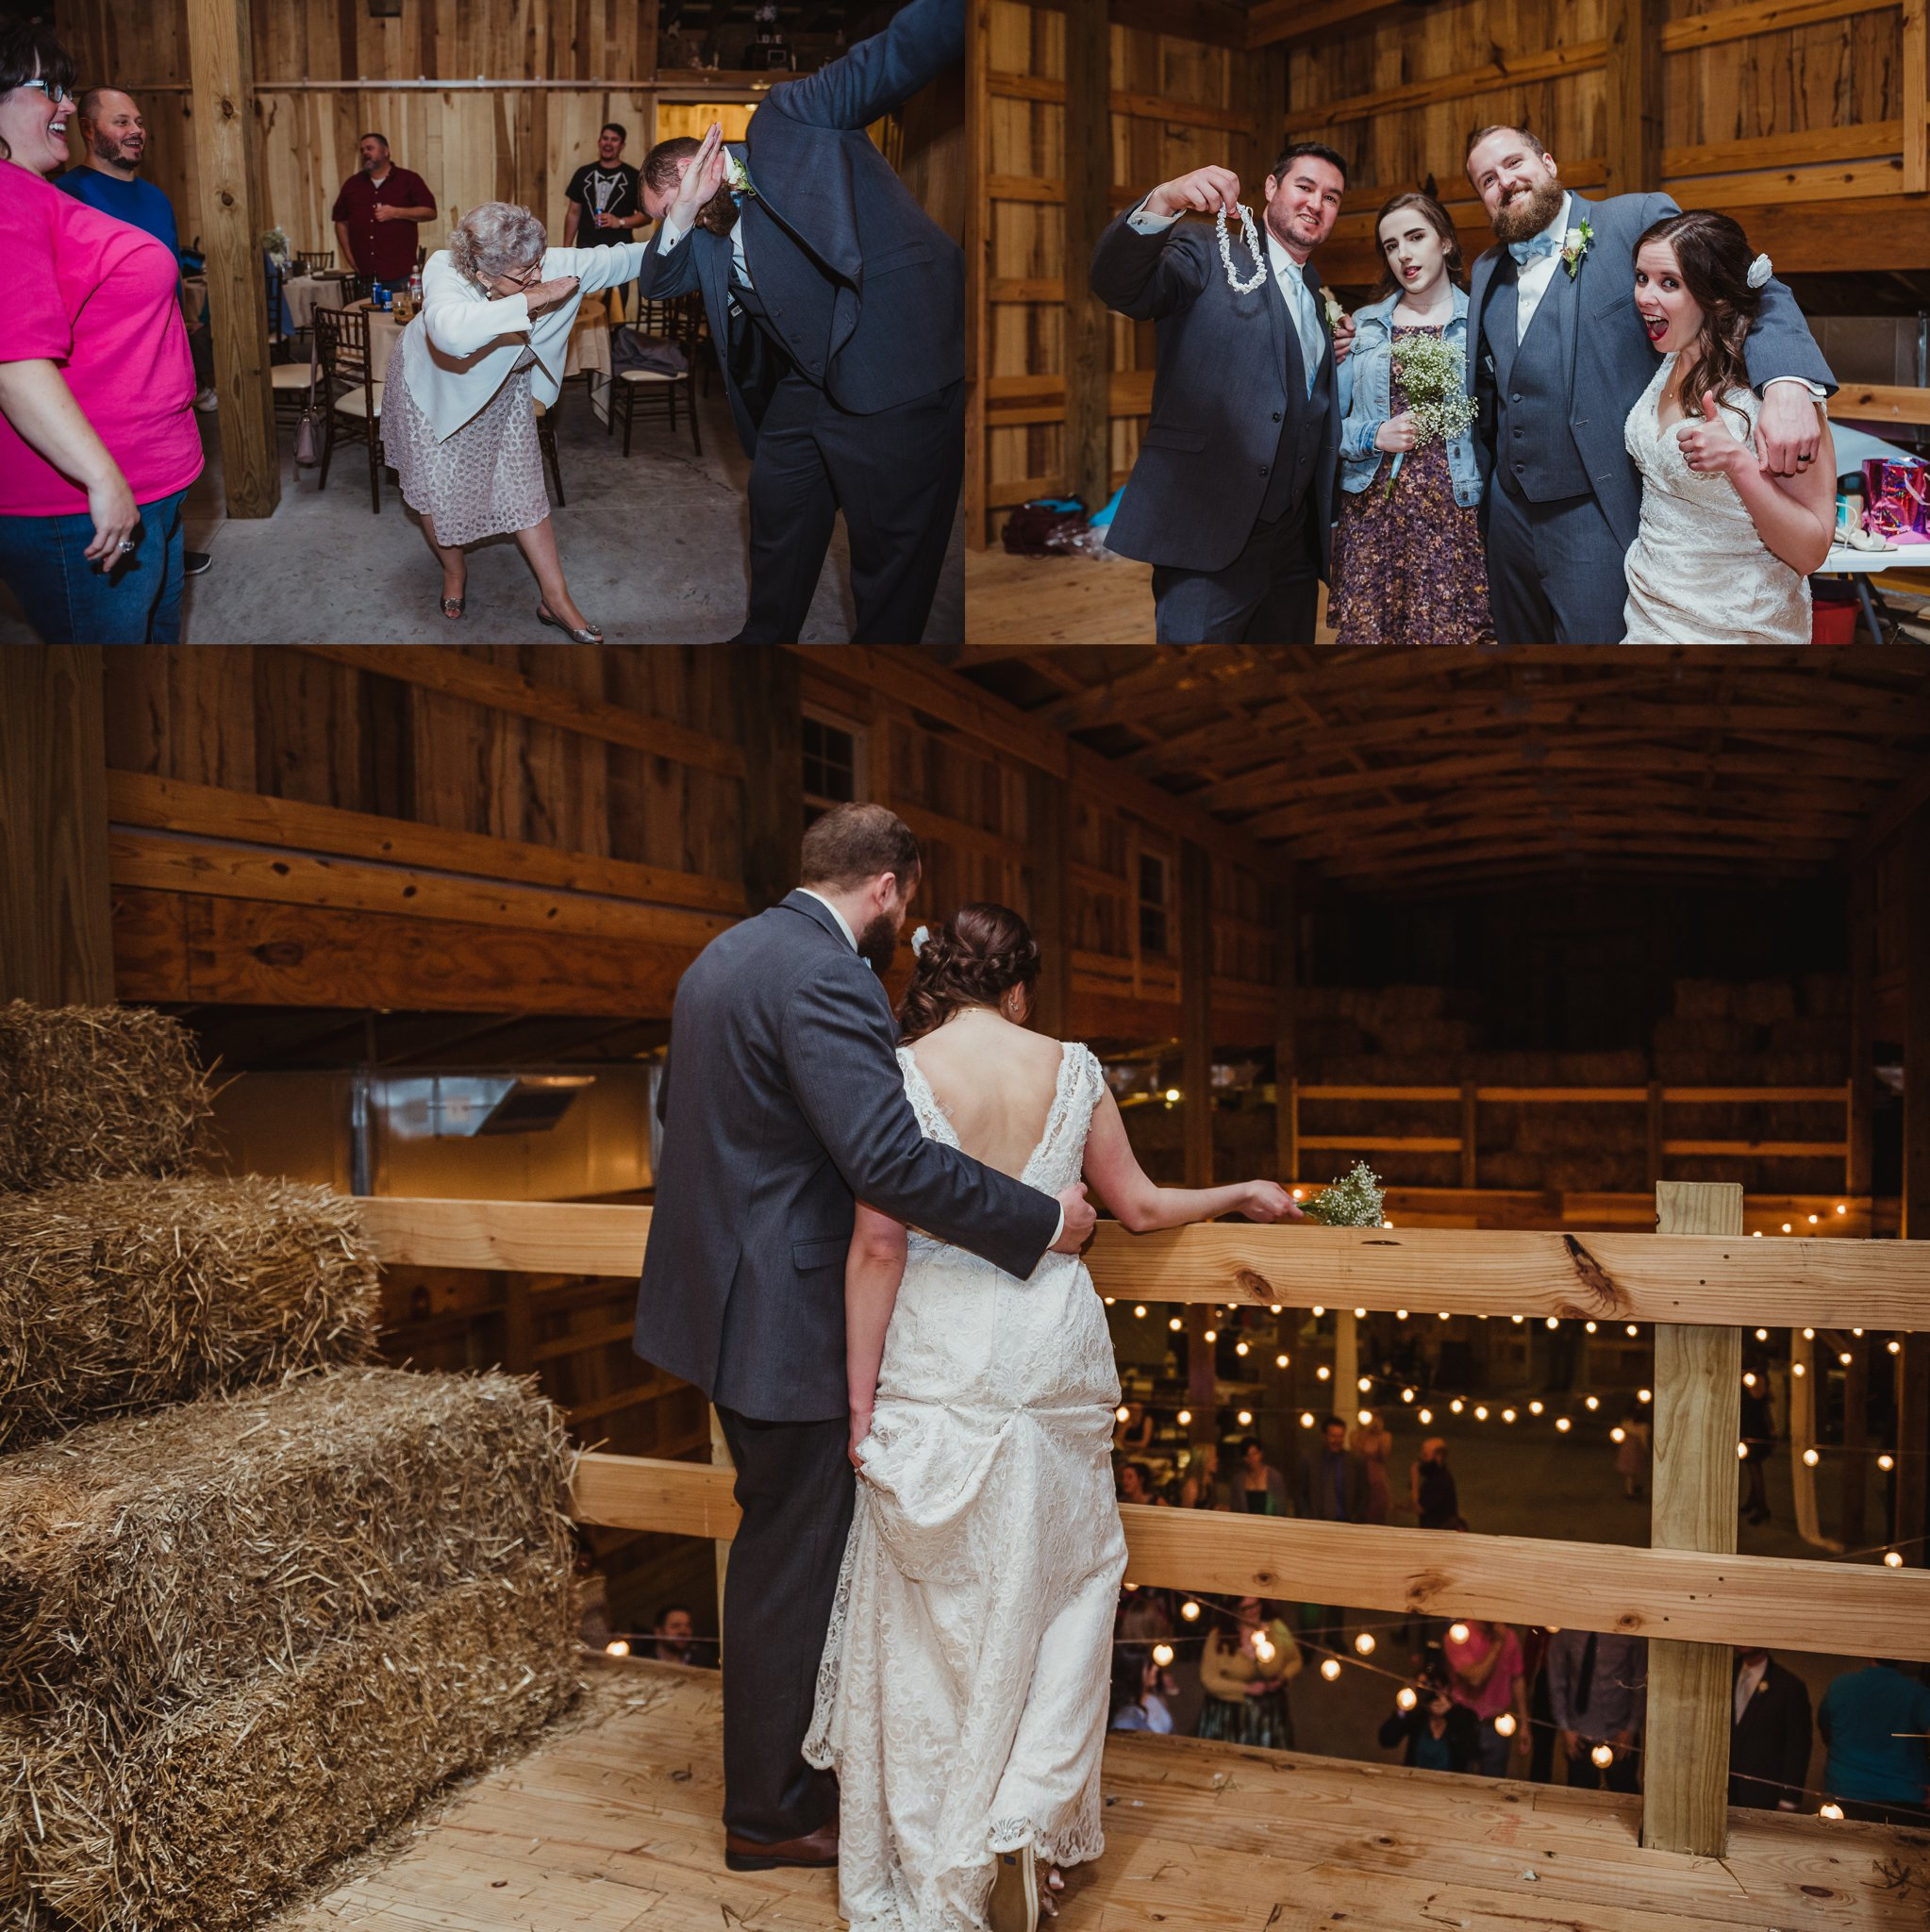 The groom dabs with his Grandma while the bride and groom pose with the two guests that caught the bouquet and the garter during their wedding reception at Carlee Farm in Oxford, NC, taken by Rose Trail Images.